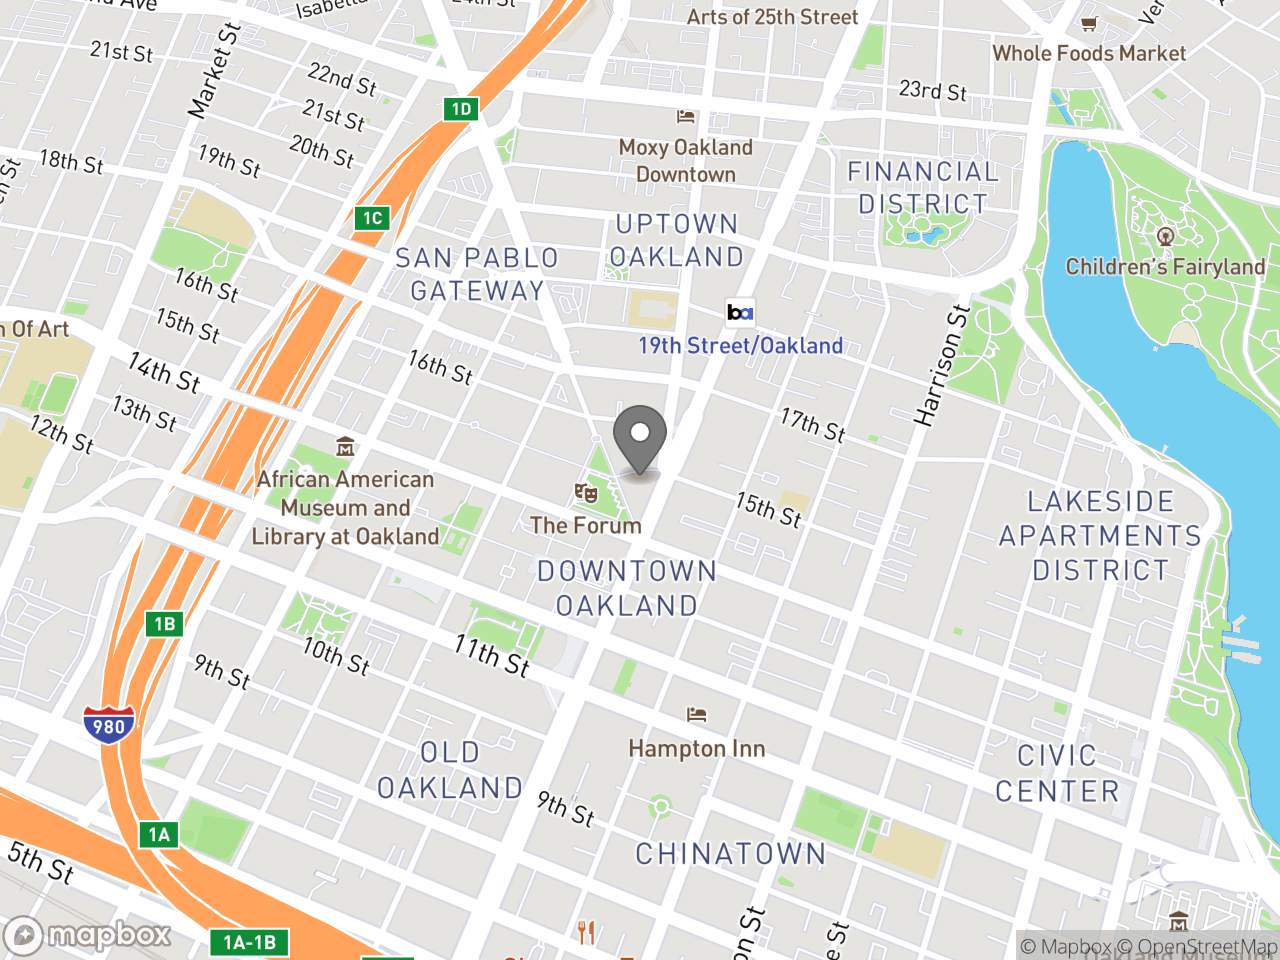 Map location for Human Services, located at 150 Frank H Ogawa Plaza in Oakland, CA 94612